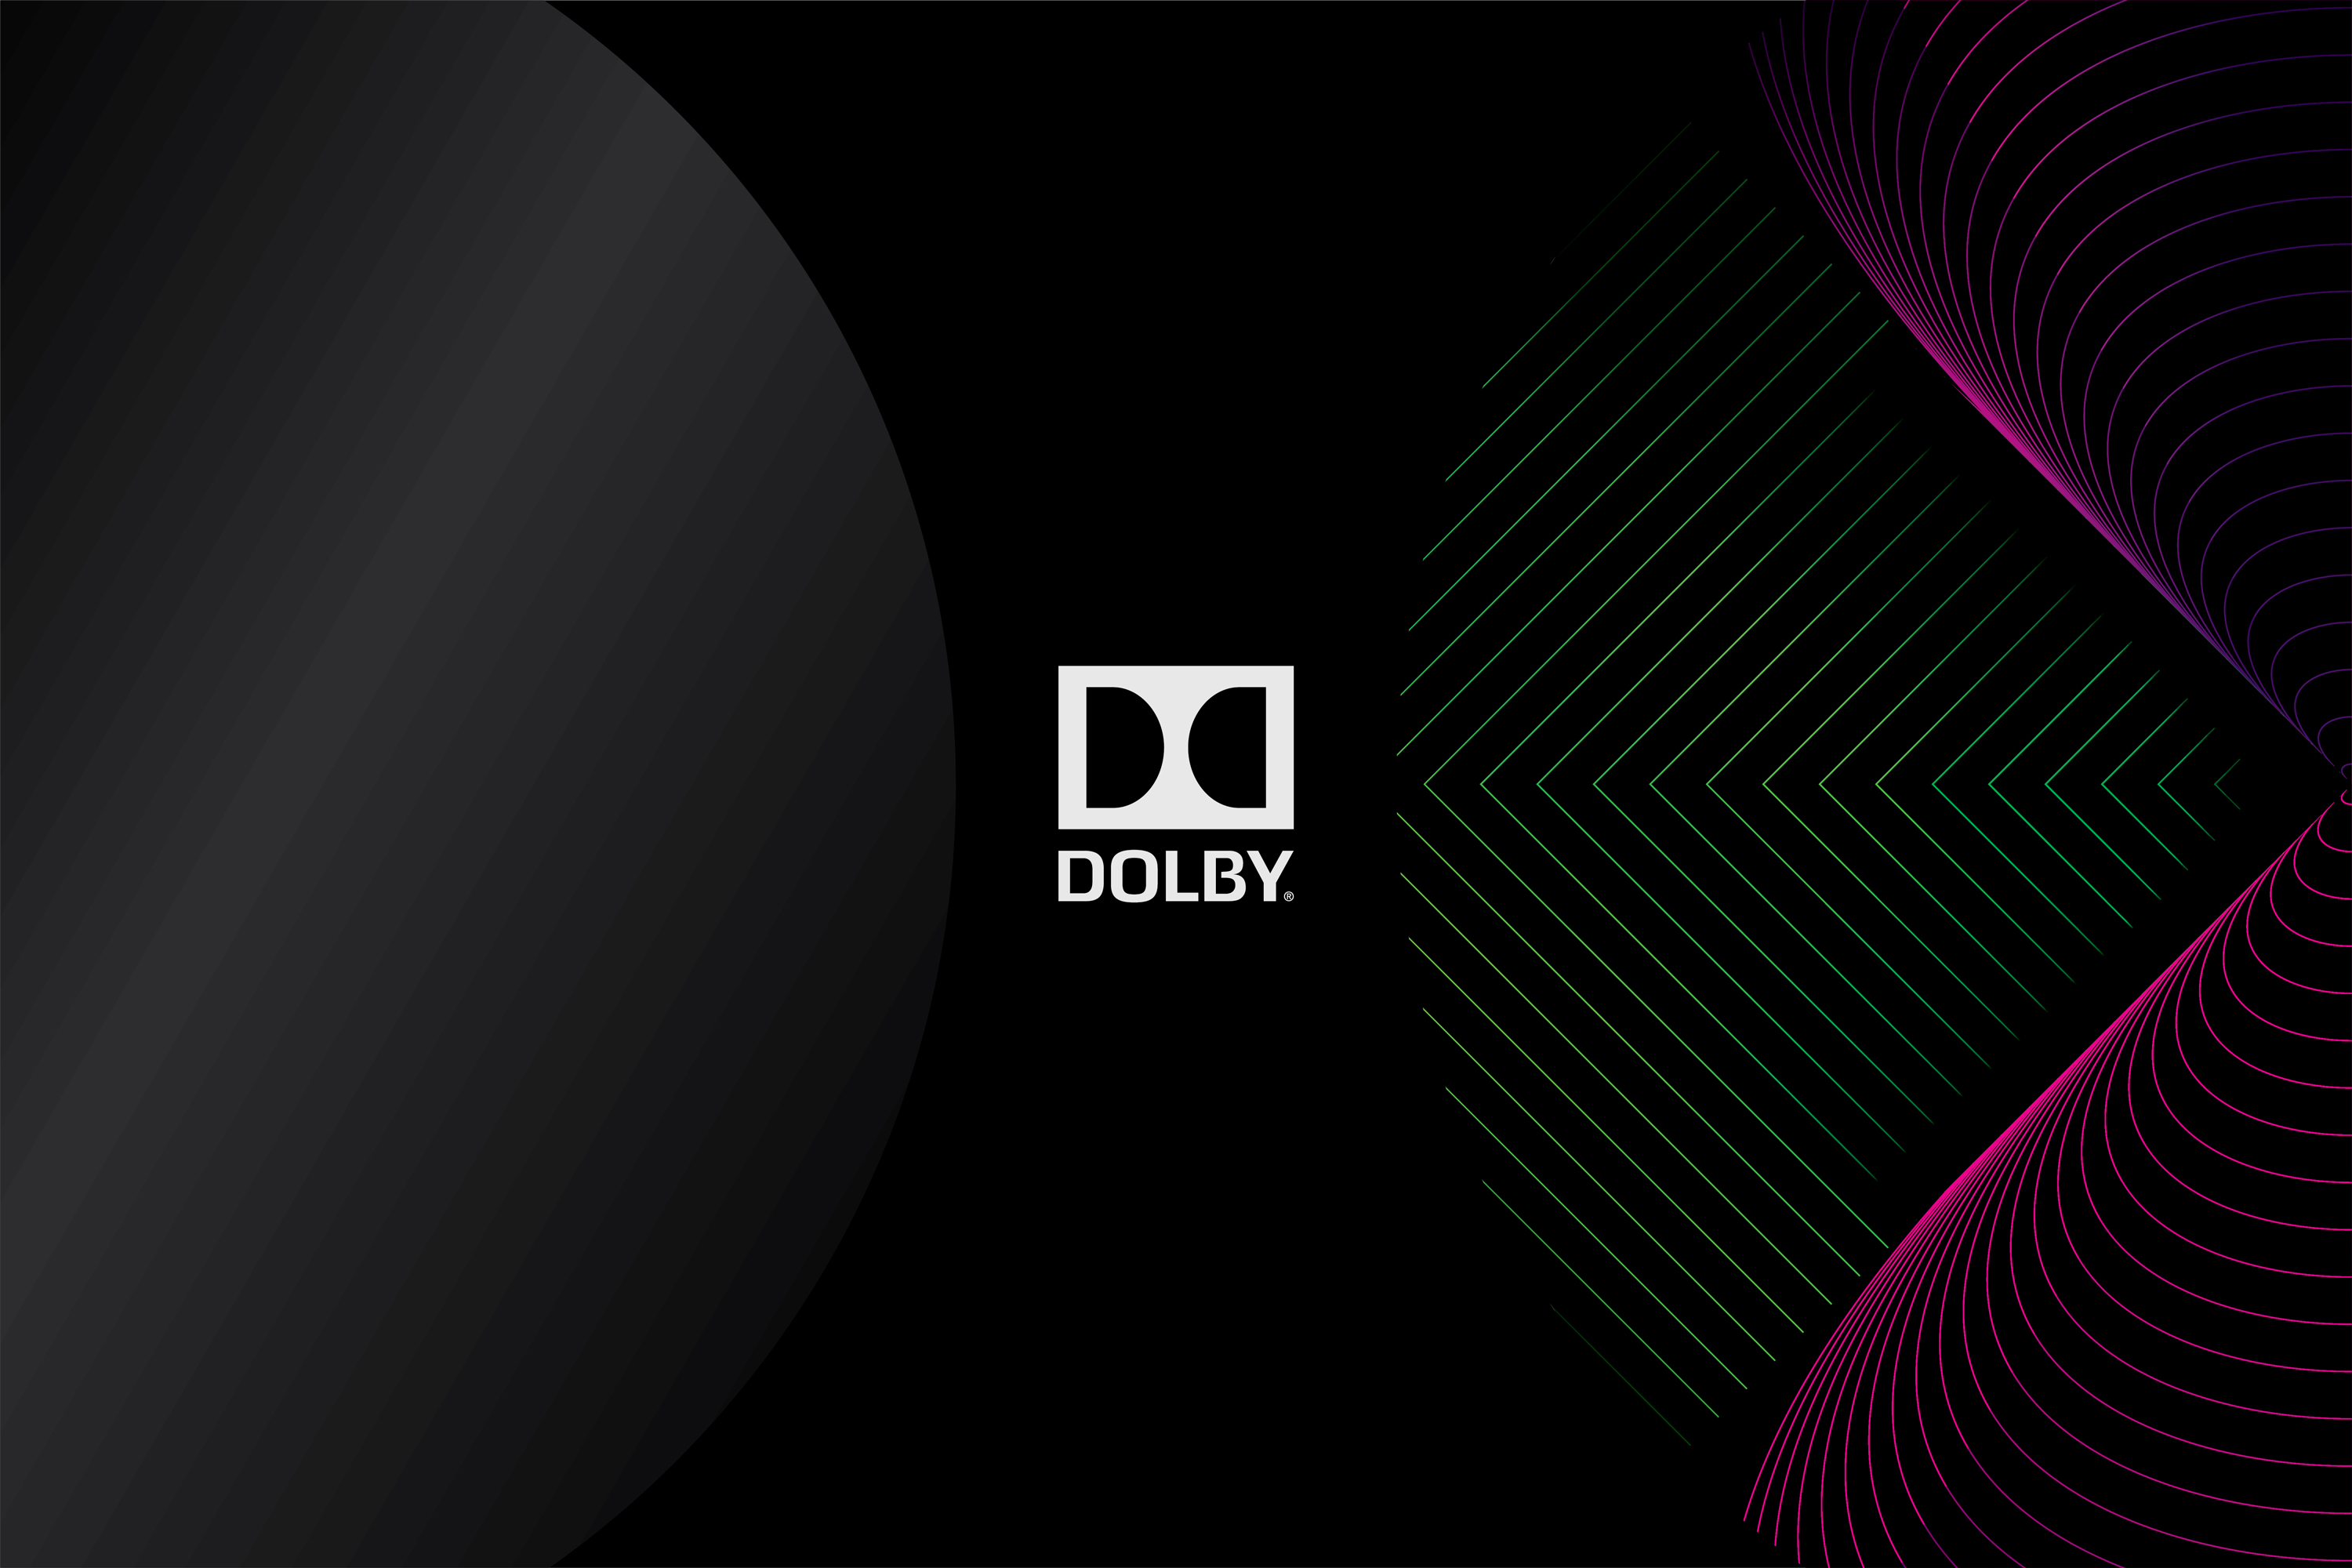 Dolby_Cinema_Double_D.jpg